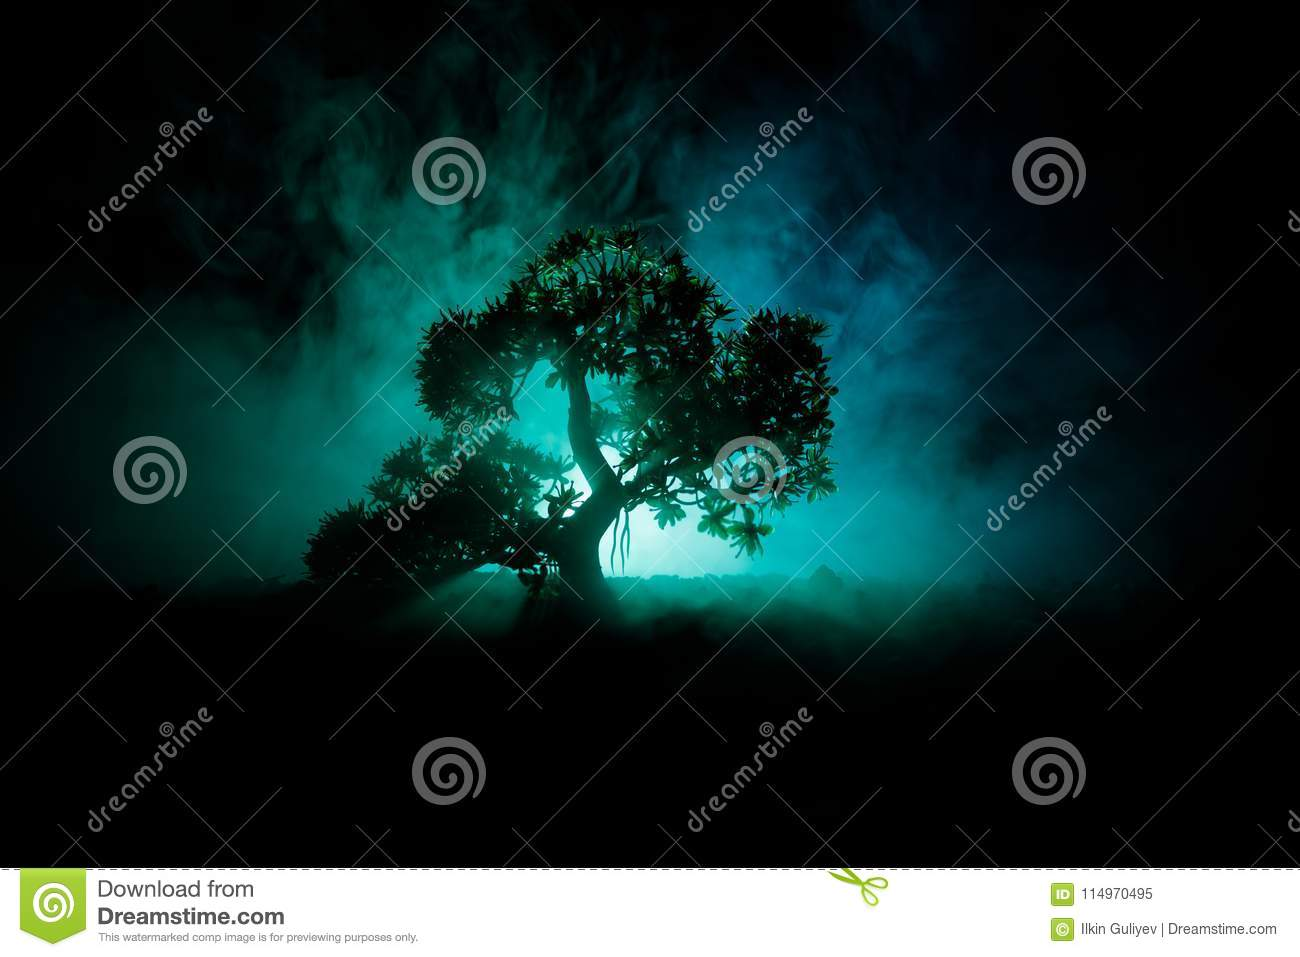 Old house with a Ghost in the forest at night or Abandoned Haunted Horror House in fog. Old mystic building in dead tree forest. T